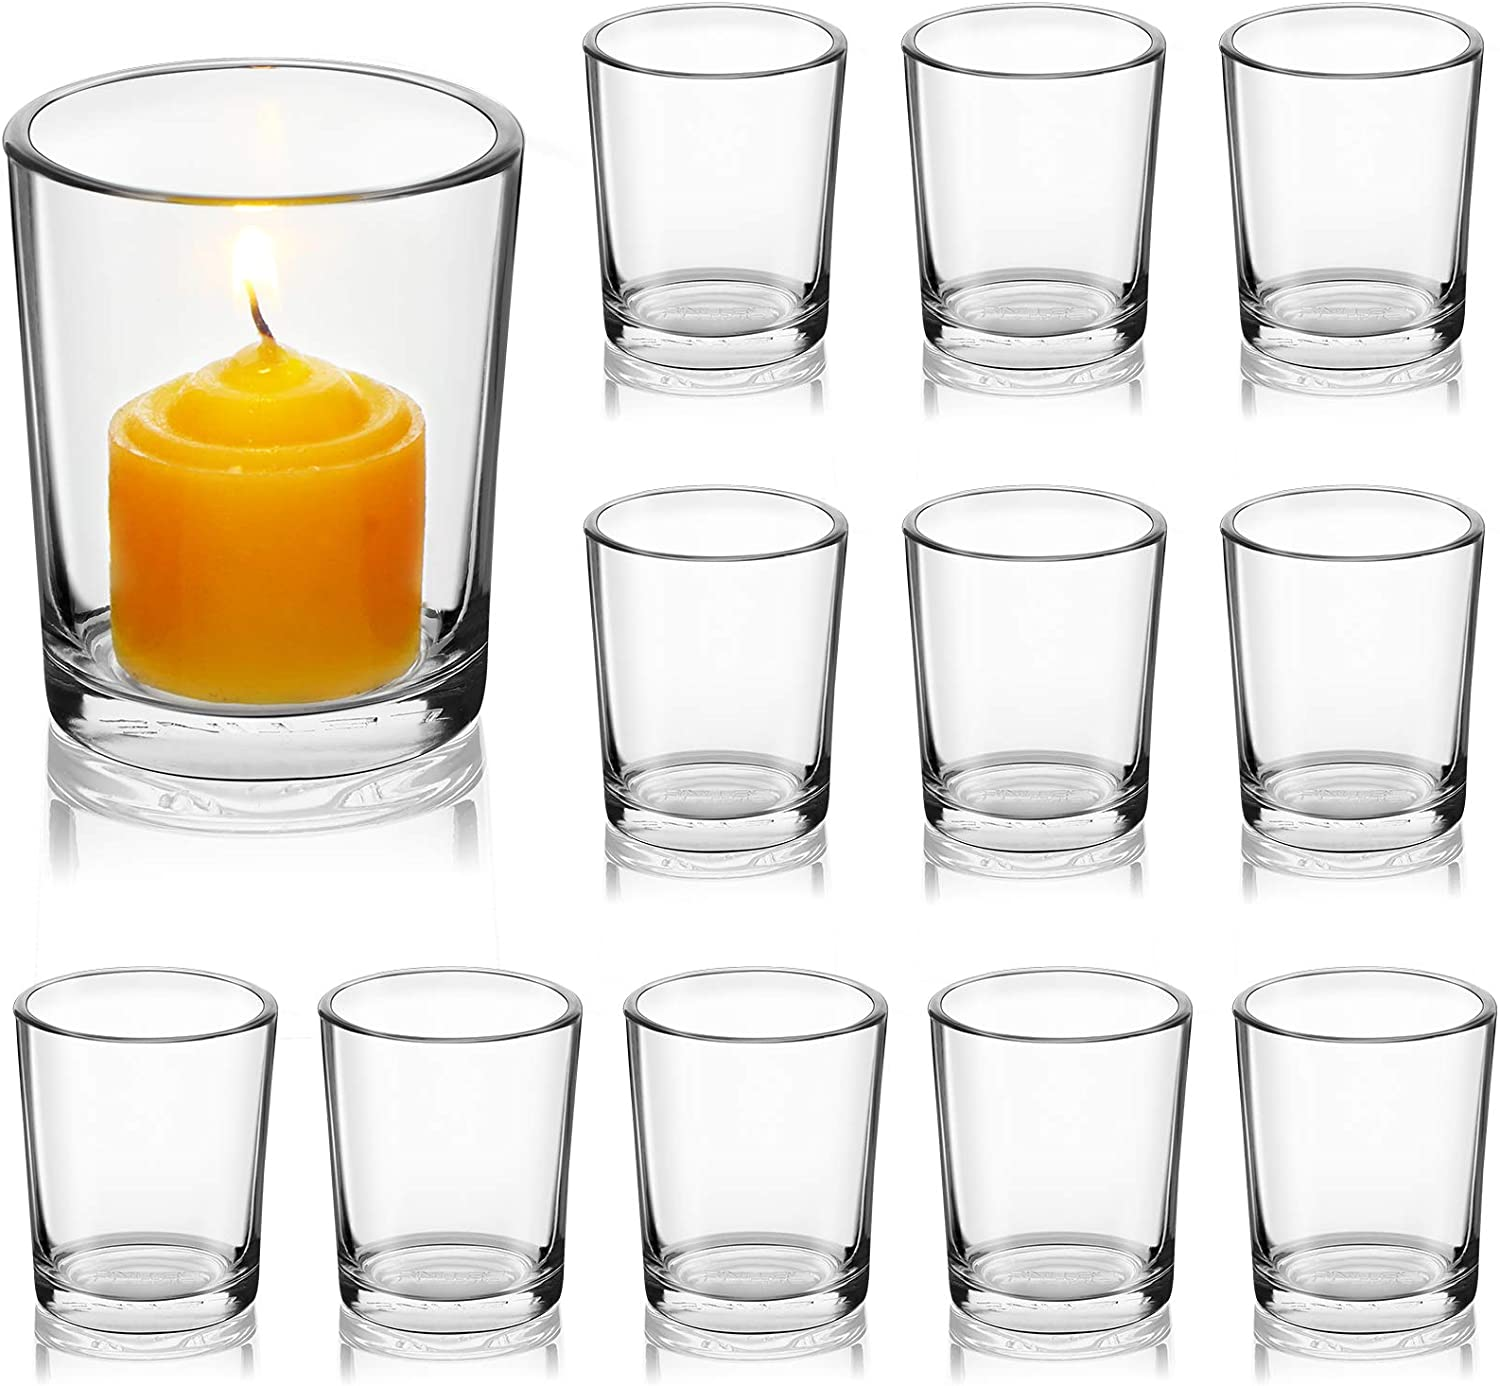 NEW before selling LETINE Clear Glass Holders OFFicial Candle Votive